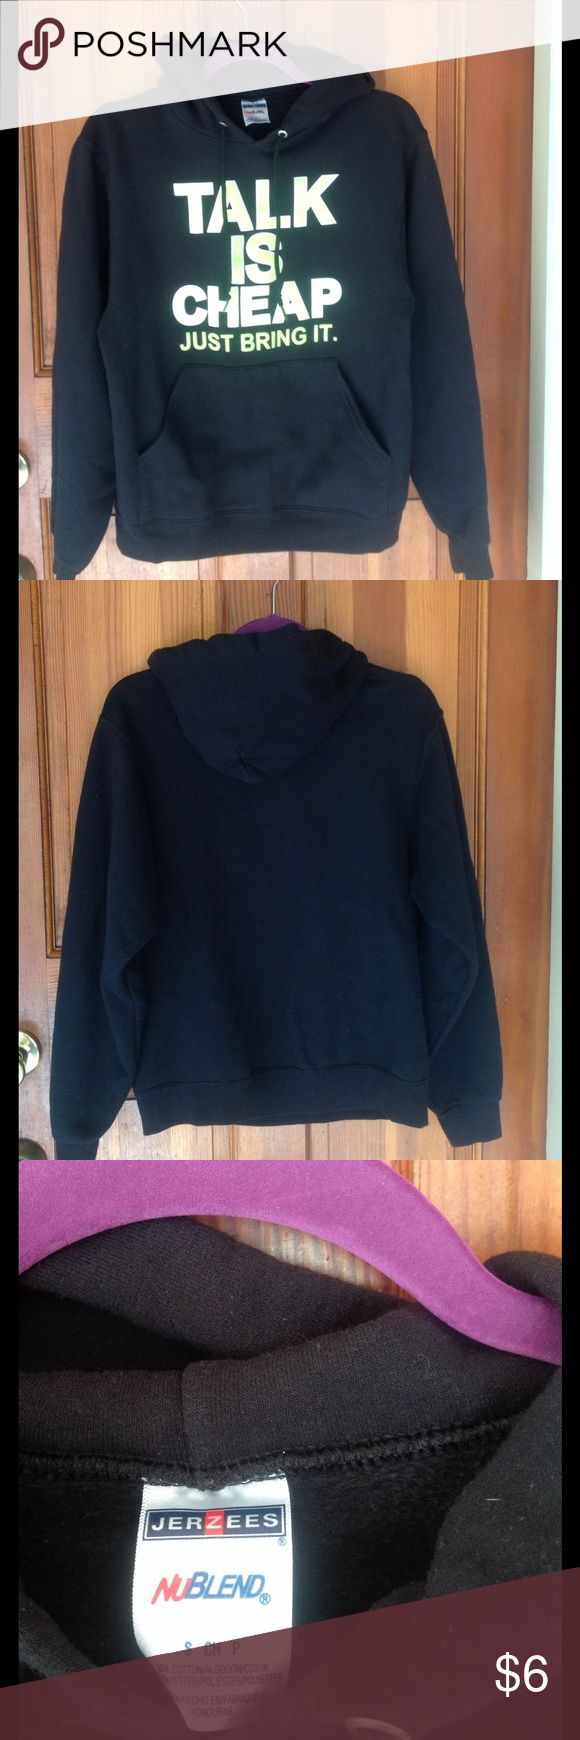 Talk is Cheap hoodie. Black unisex Talk is Cheap hoodie in good used condition. Measures 19 inches from armpit to armpit and 25 inches in length. Jerzees Jackets & Coats